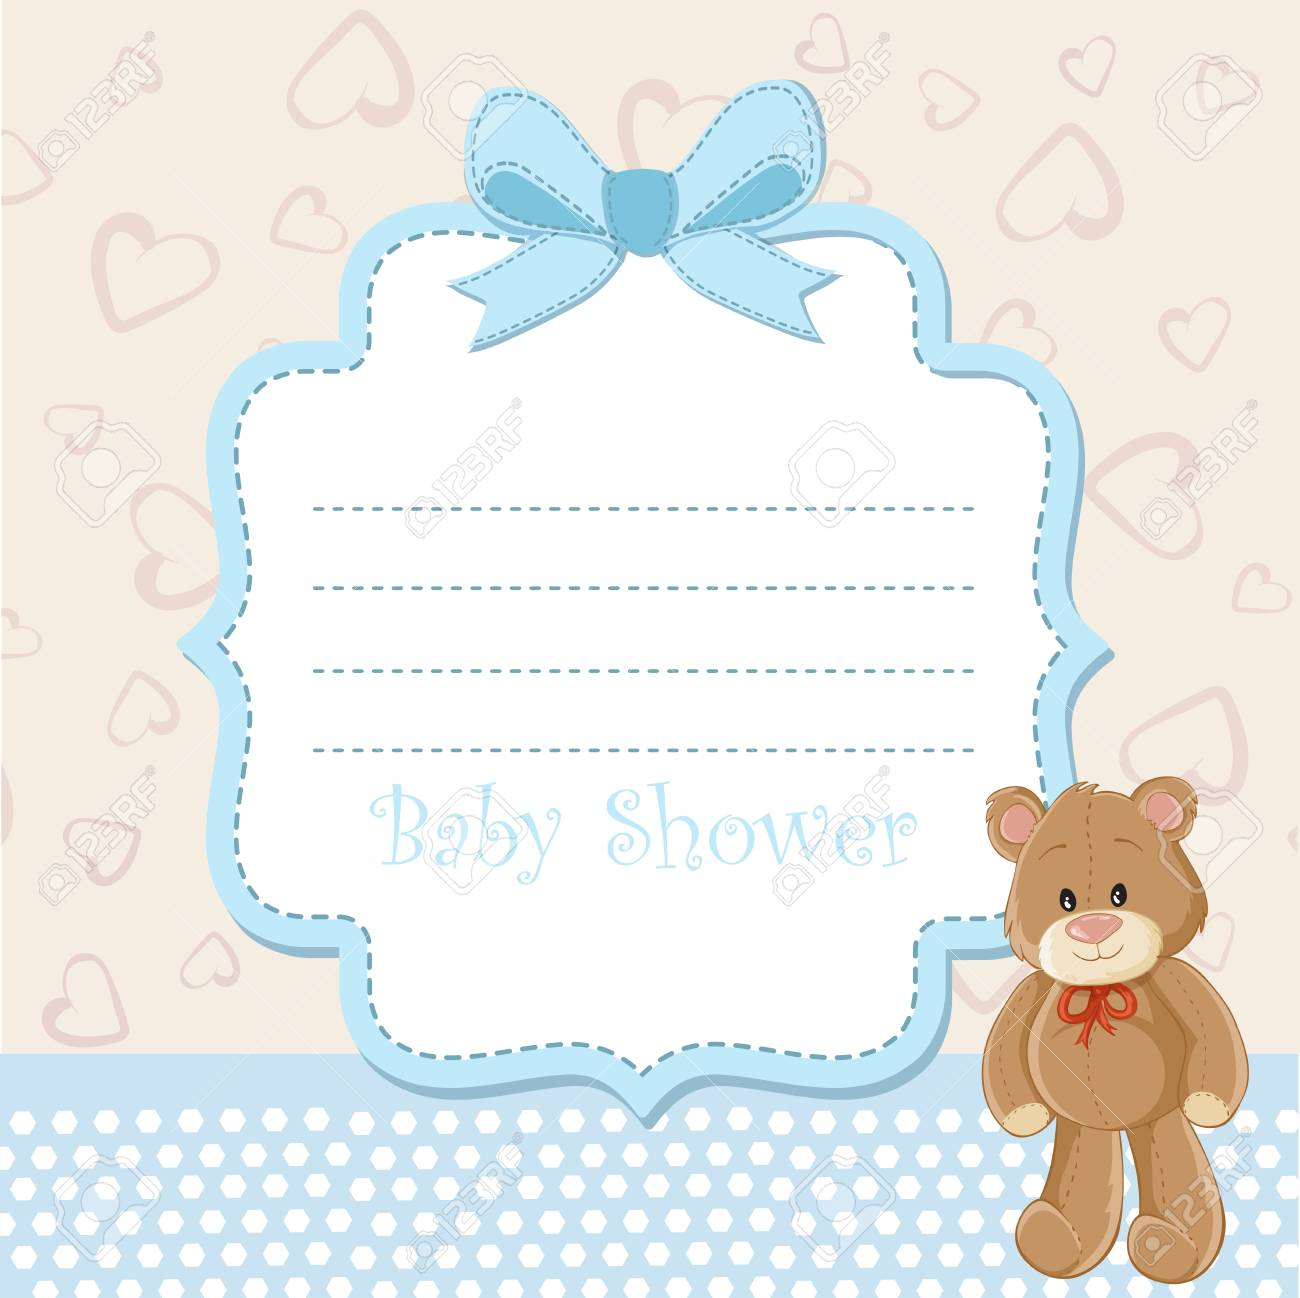 Baby shower invitation with teddy bear royalty free cliparts baby shower invitation with teddy bear stock vector 59731718 filmwisefo